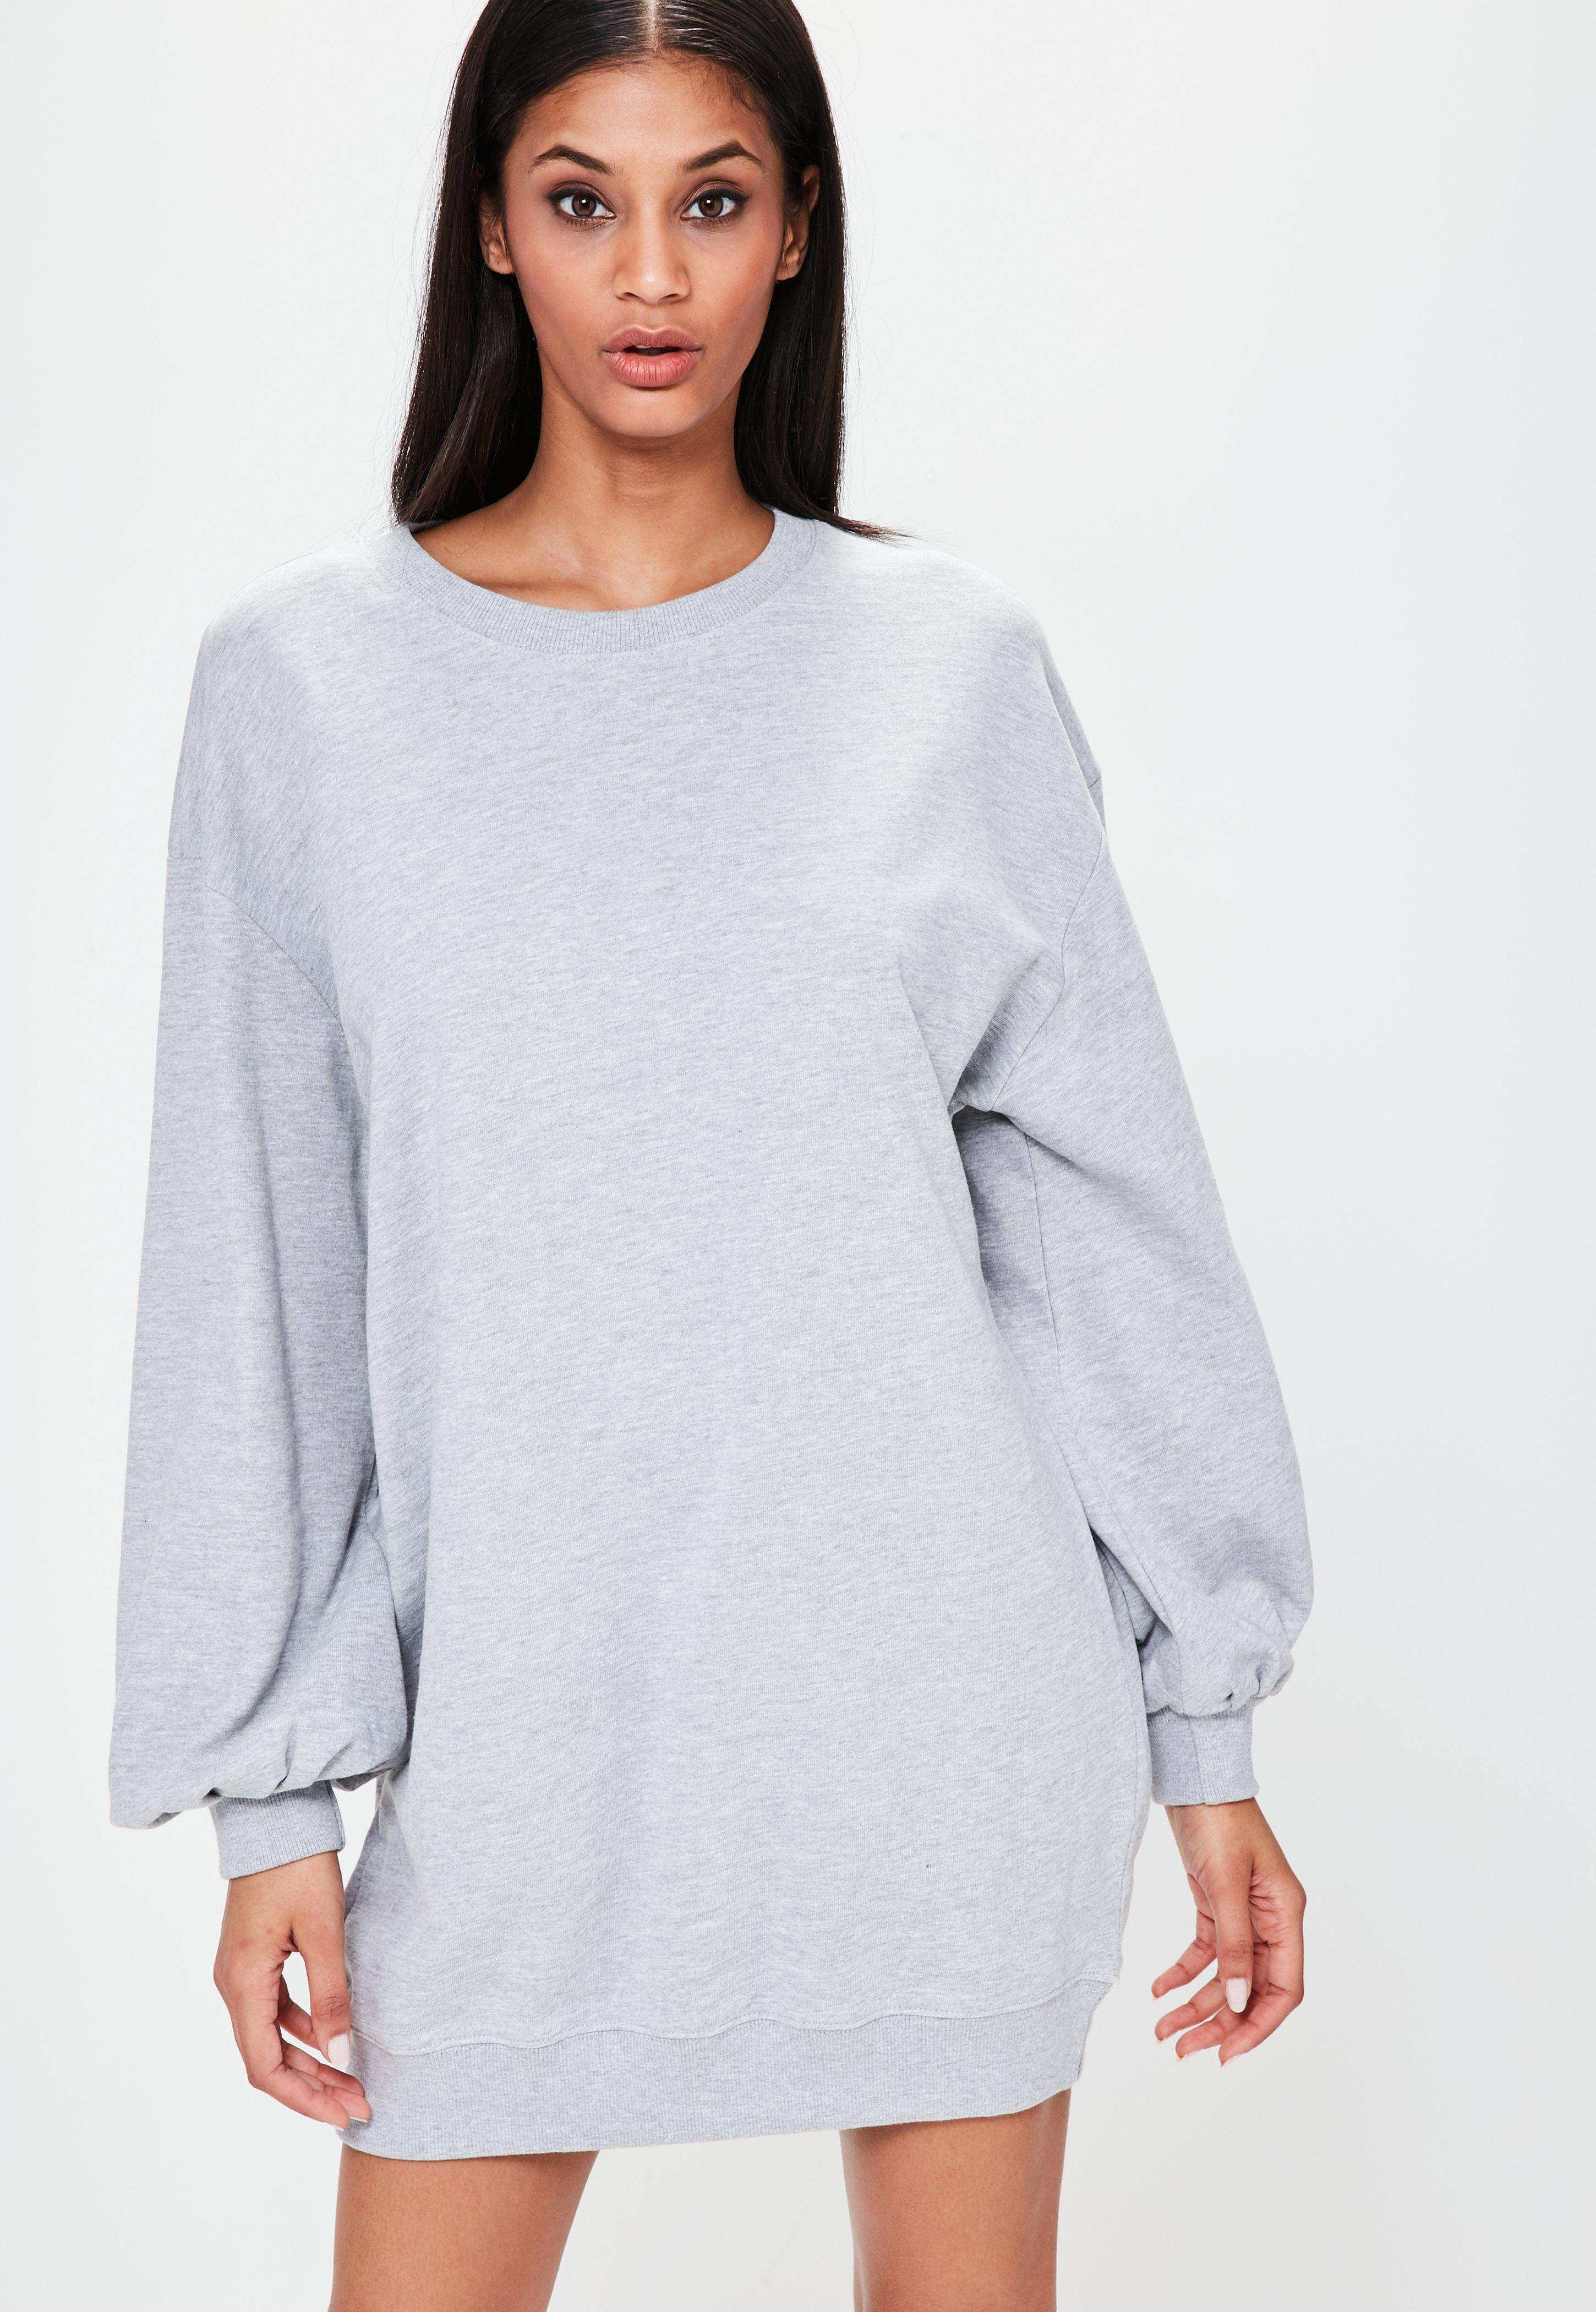 7f2eb9cc46a Missguided Grey Balloon Sleeve Sweater Dress in Gray - Lyst